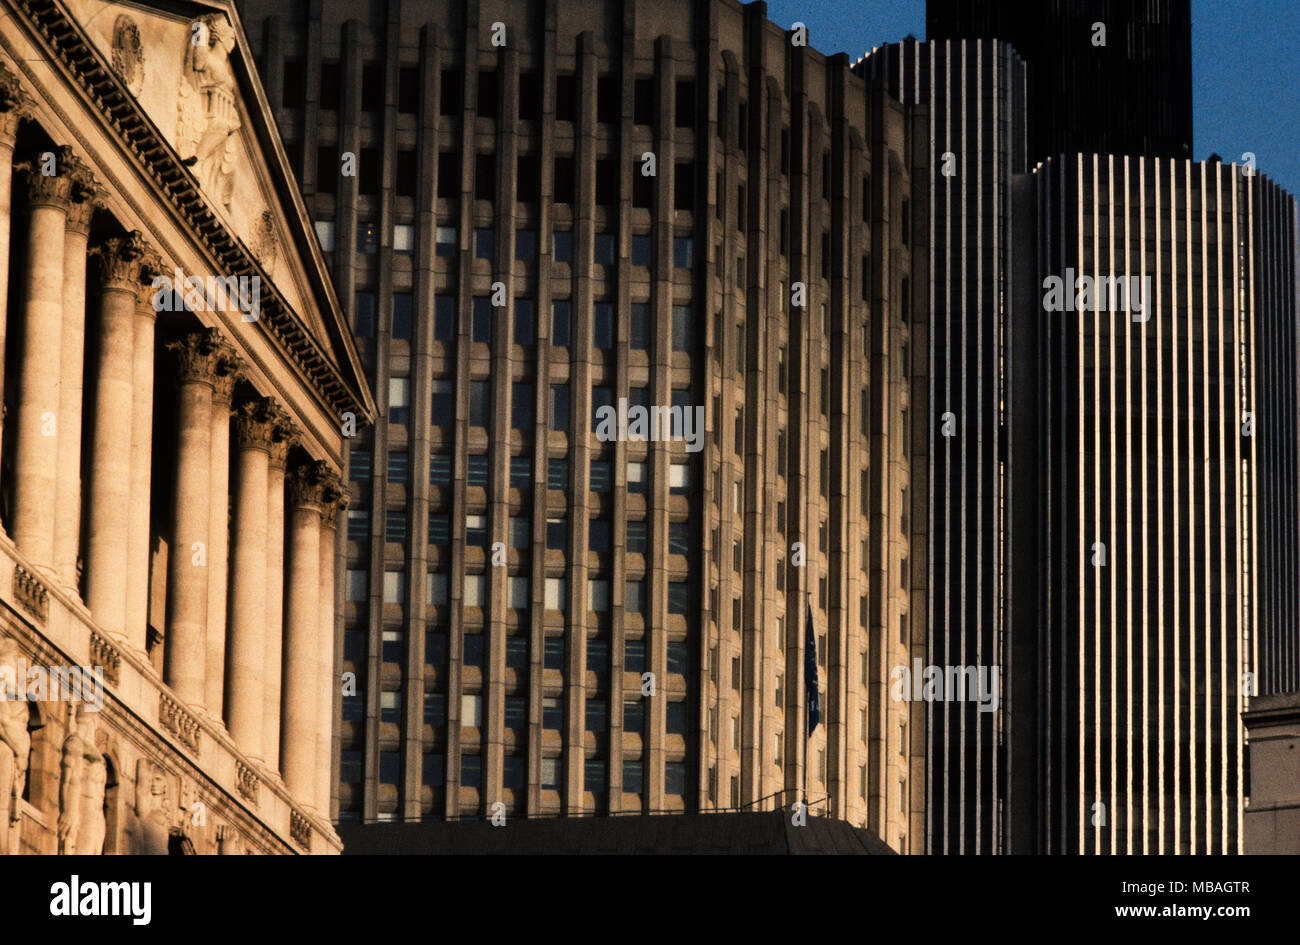 25 bank street london stock photos 25 bank street london - National westminster bank head office address ...